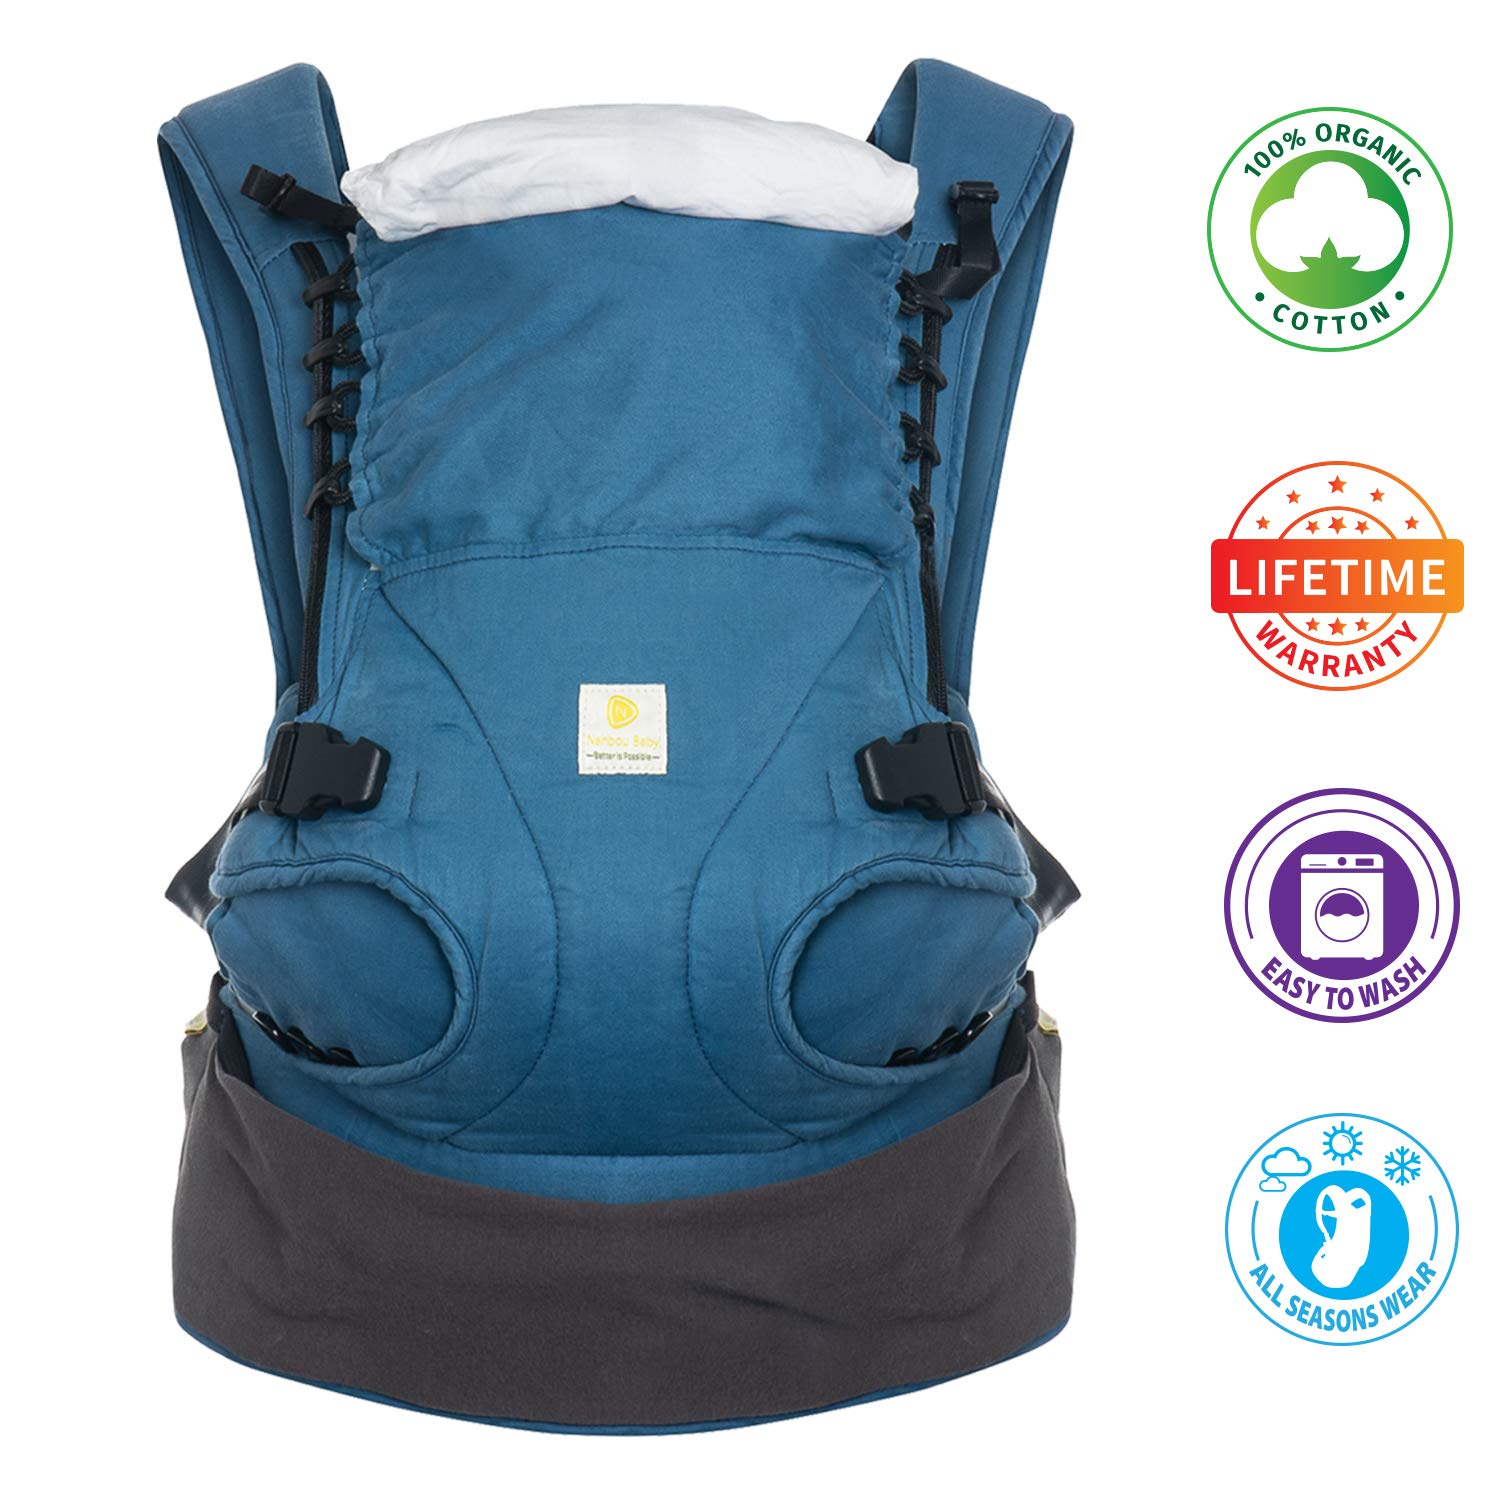 Nahbou 100 Organic Cotton Baby Carrier with Hip Seat – All Seasons, 360 Positions, Newborn Carrier to Toddler Up to 45 Lbs Free to Grow Baby Hip Seat Carrier Compact Ergonomic Breathable Backpack